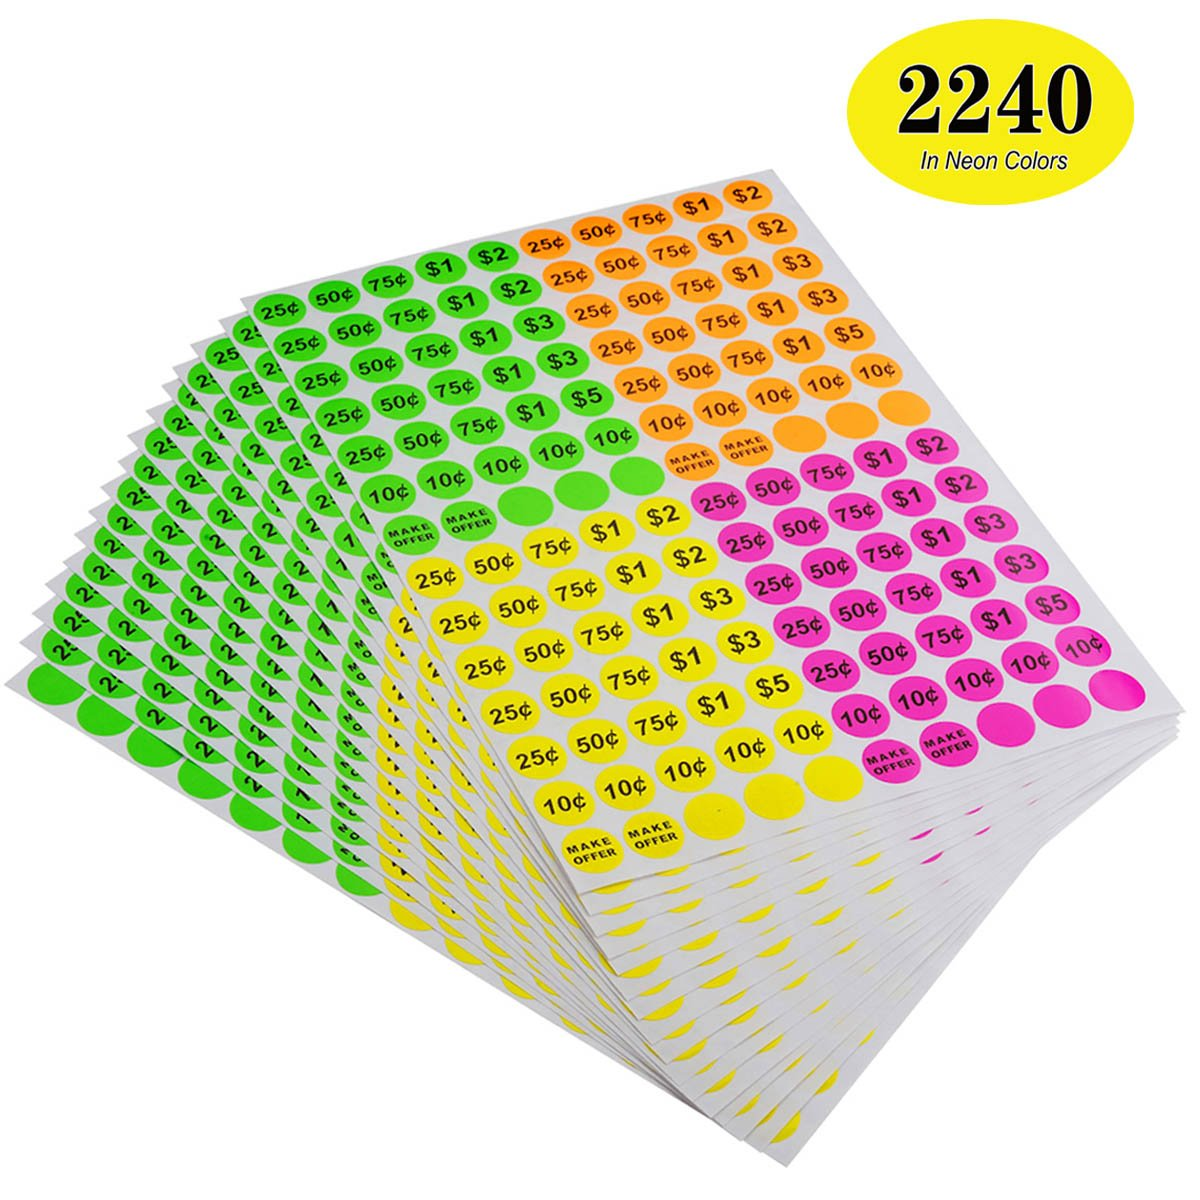 Bright Neon Fluorescent Multicolored with Blank Label ONUPGO Garage Sale Labels 3//4 Round Preprinted Pricing Labels Price Stickers Removable Prices Labels Pack of 2240